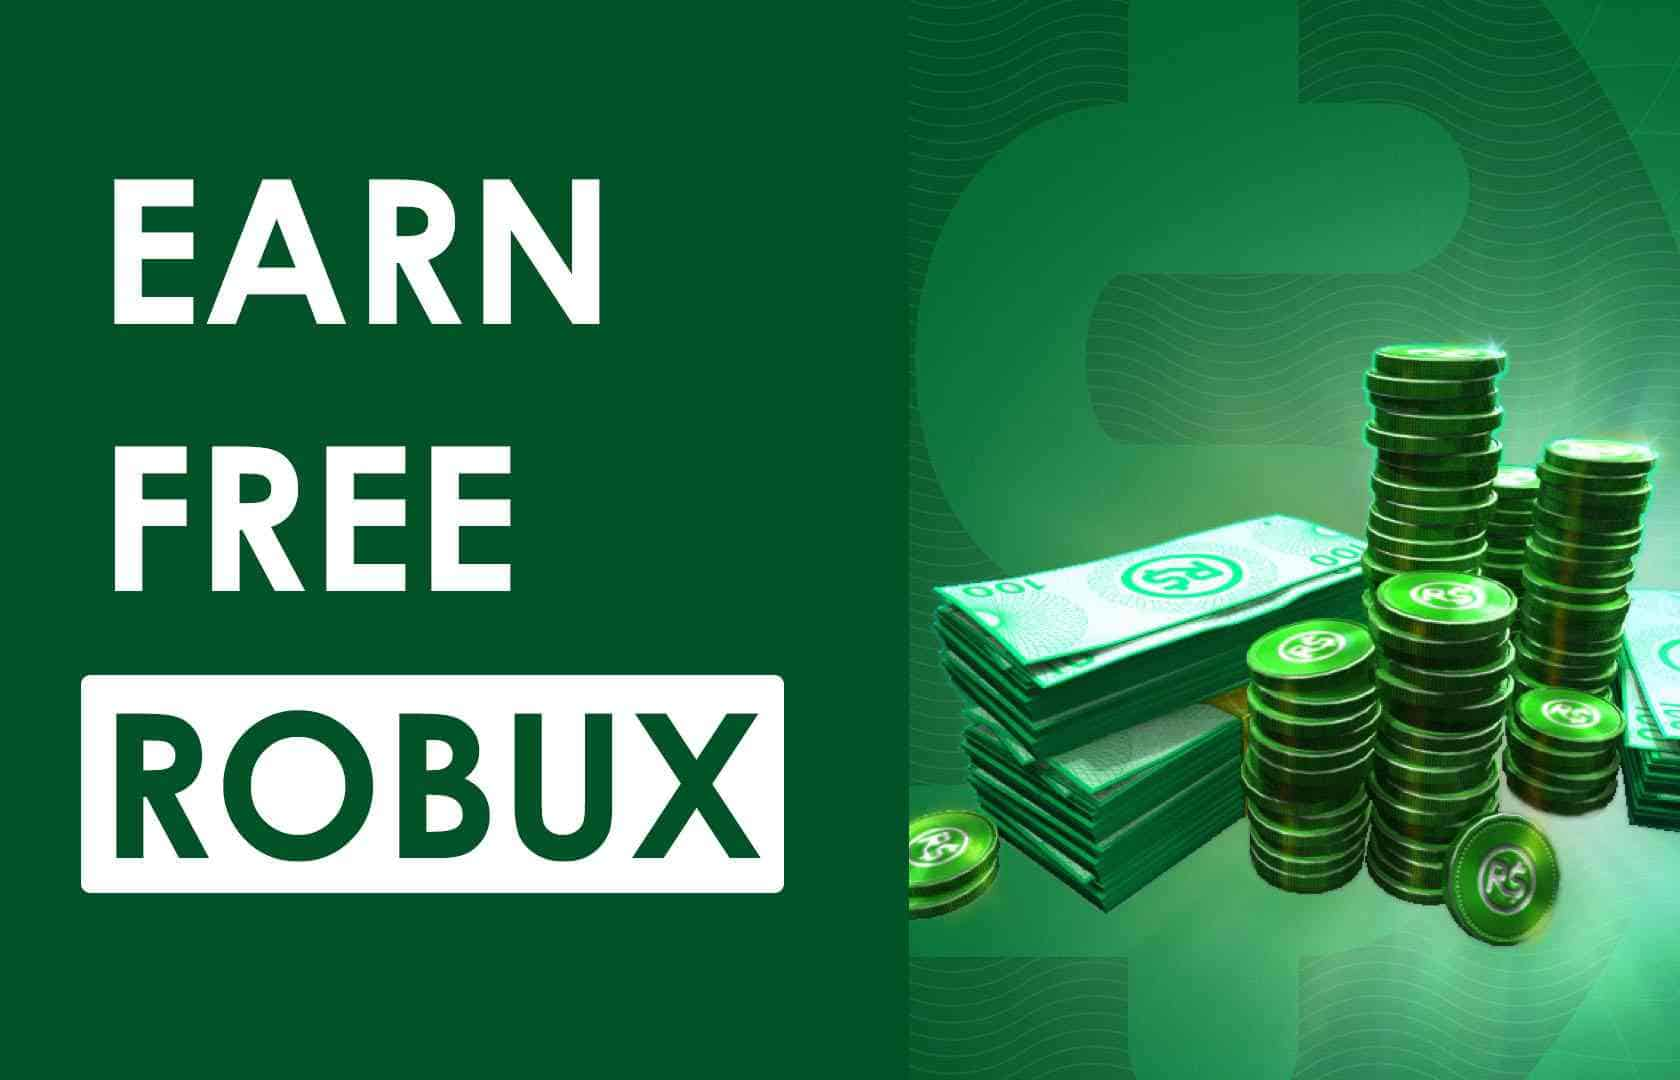 How To Earn Free Robux in 2020